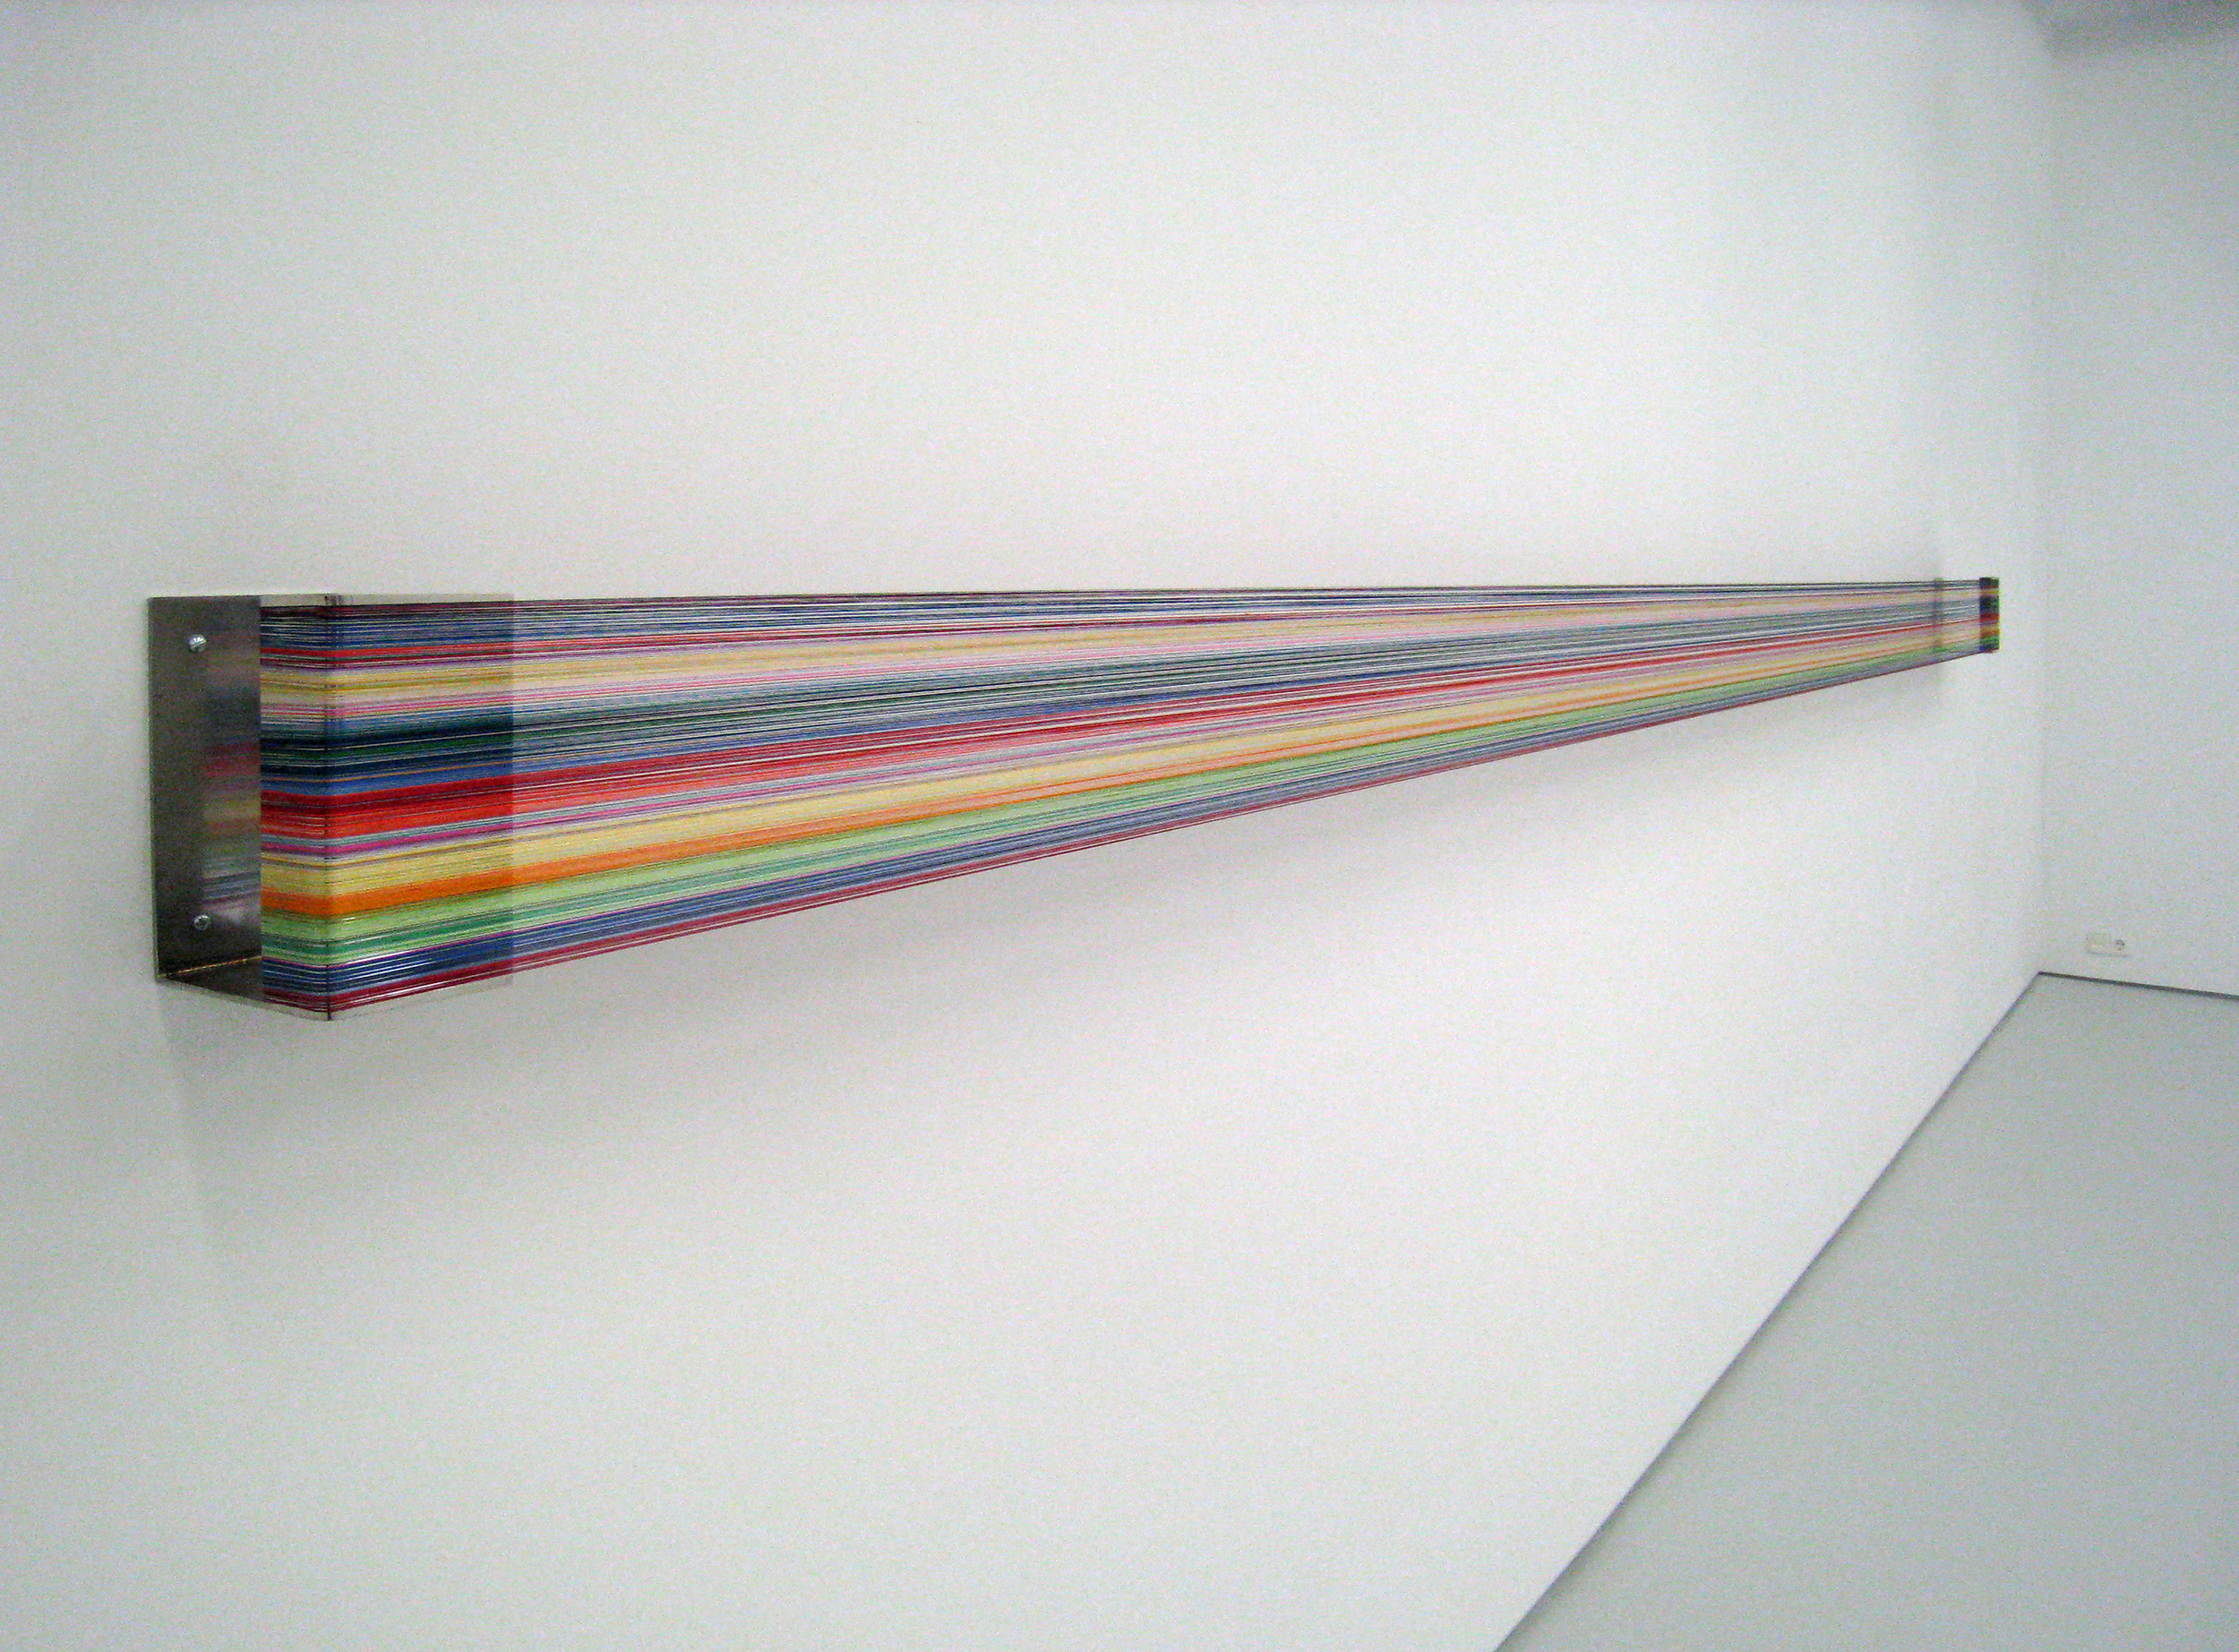 Fernanda Fragateiro  Nao Ligar #4 , 2008 polished stainless steel, silk thread, 485 x 20 x 15 cm